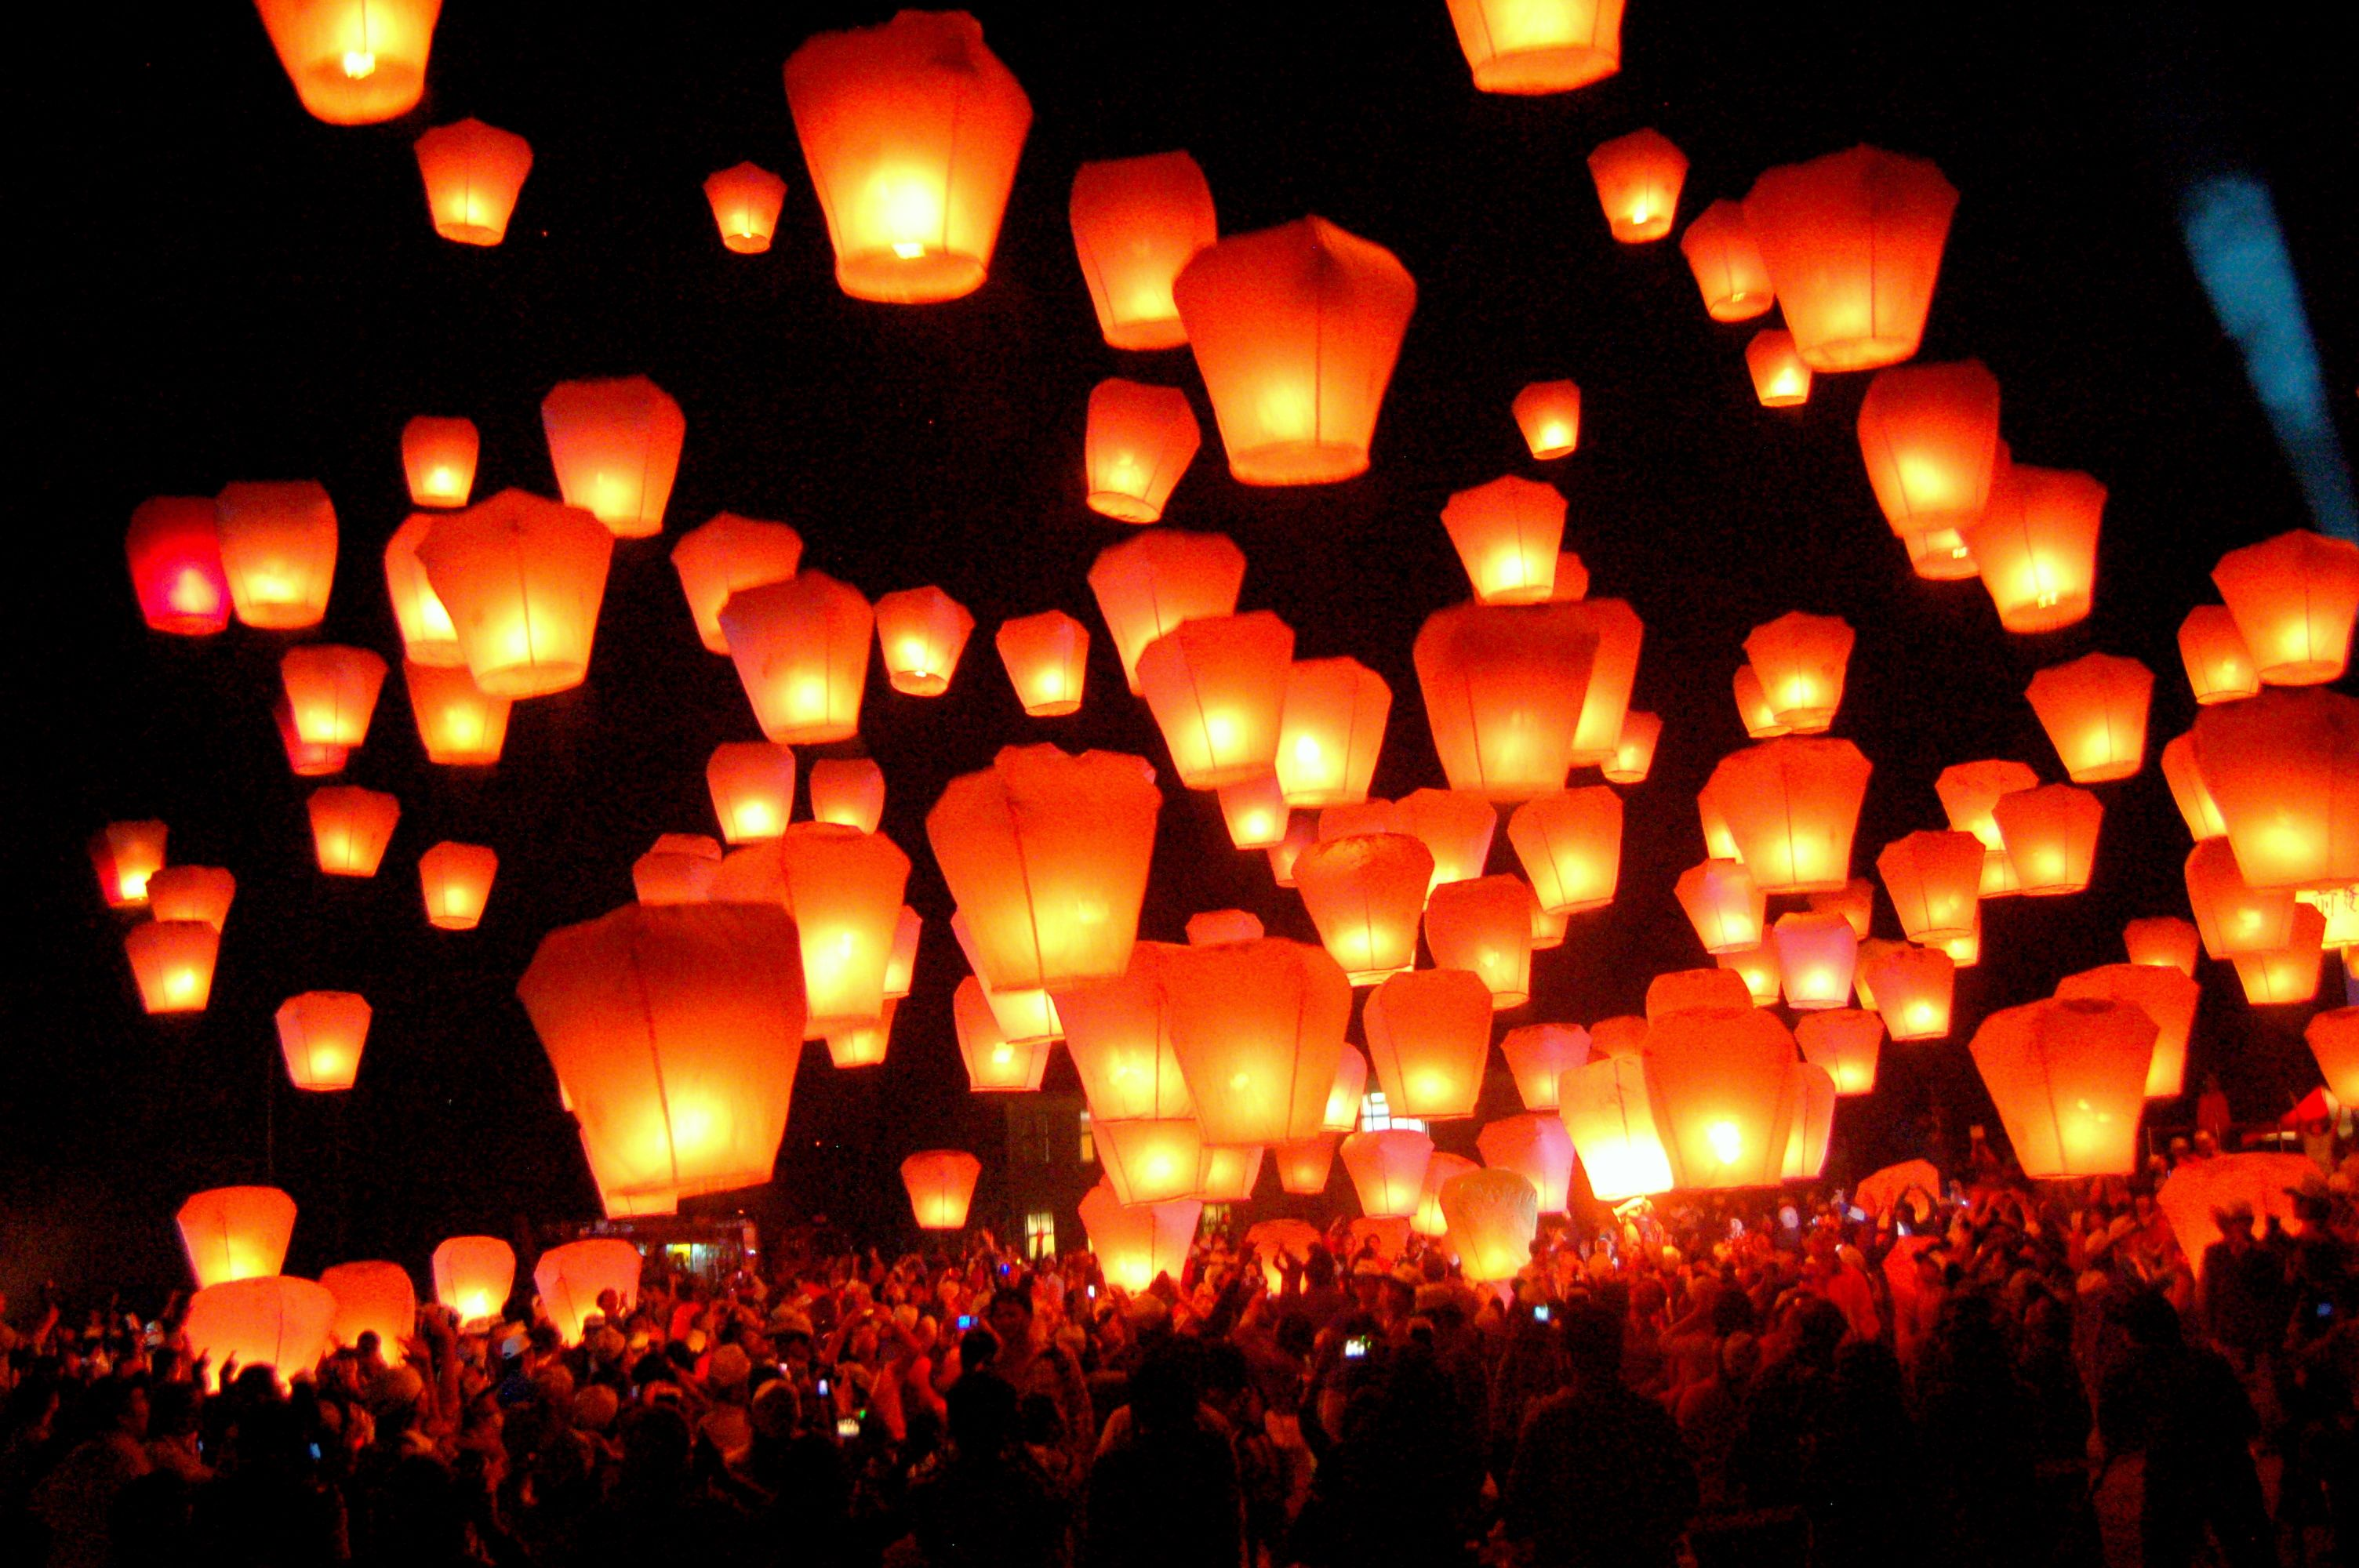 lantern festivals in asia essay Chinese new year is one of the most significant holiday seasons in singapore marking the first day of the year  lantern festivals at local temples,.